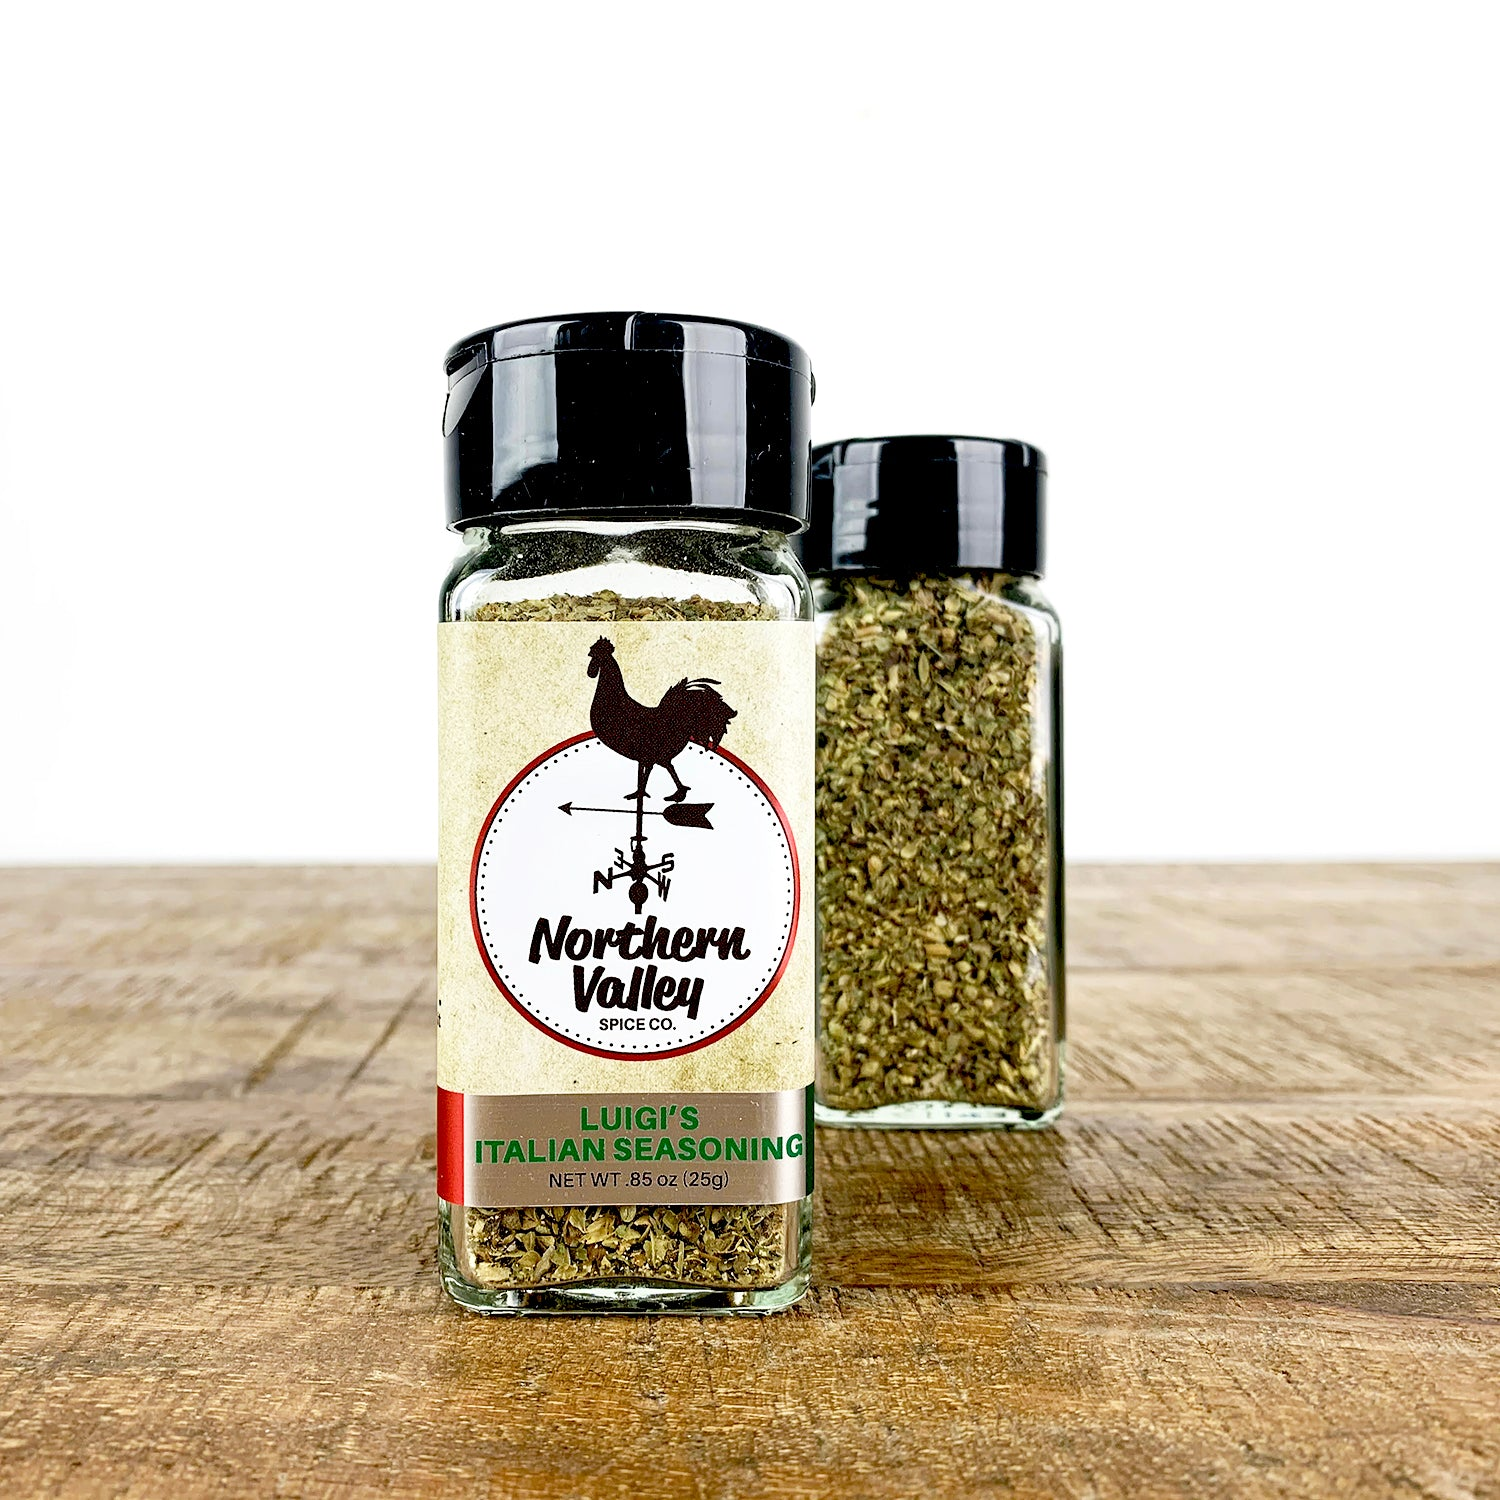 Luigi's Italian Seasoning | Spices | Northern Valley Spice Co.